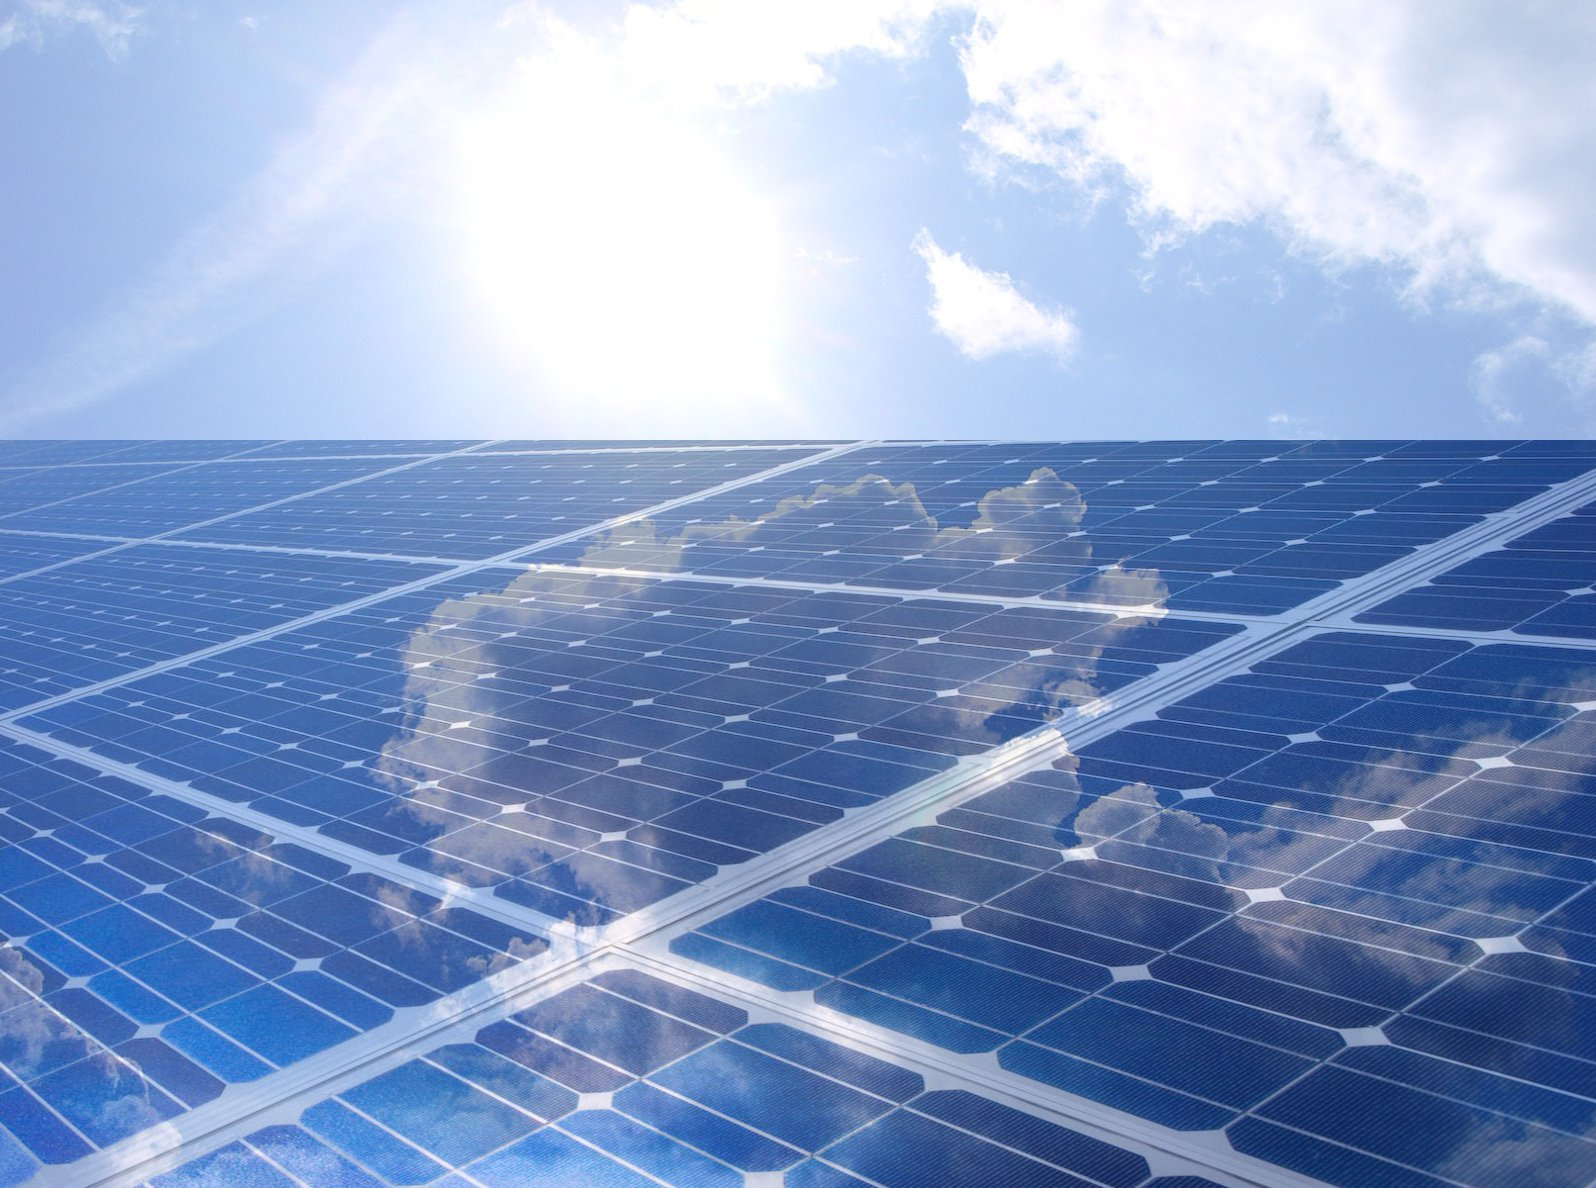 How to live on solar power the off grid project energy efficient off grid living solutioingenieria Images